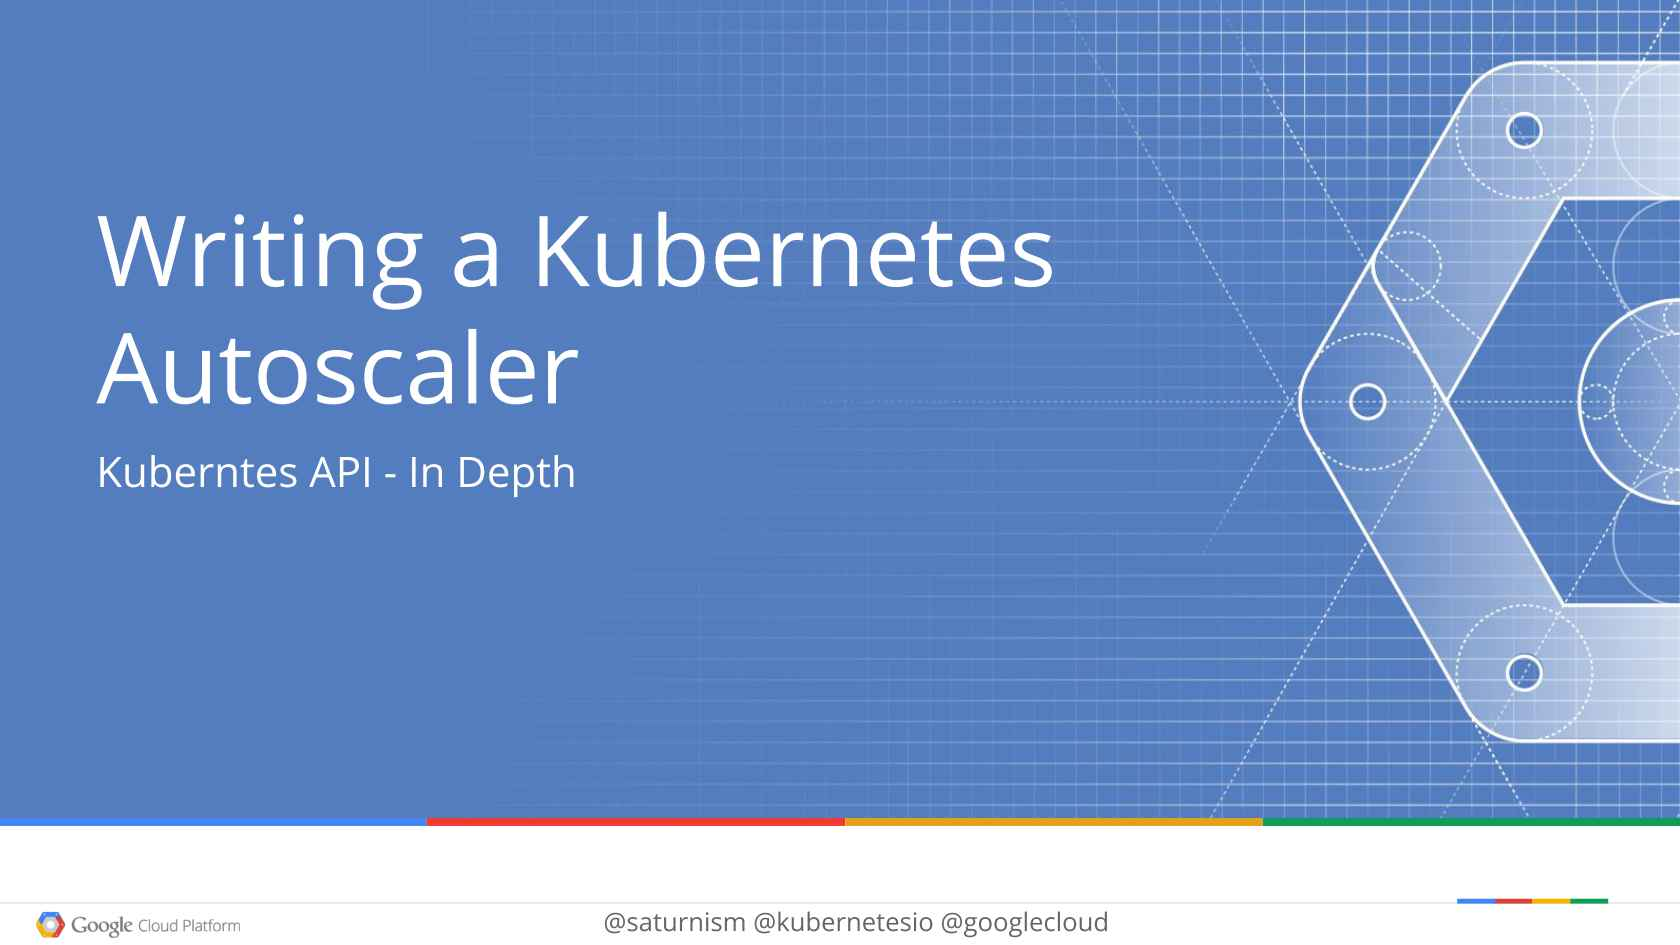 Writing a Kubernetes Autoscaler with Groovy and Spring Boot